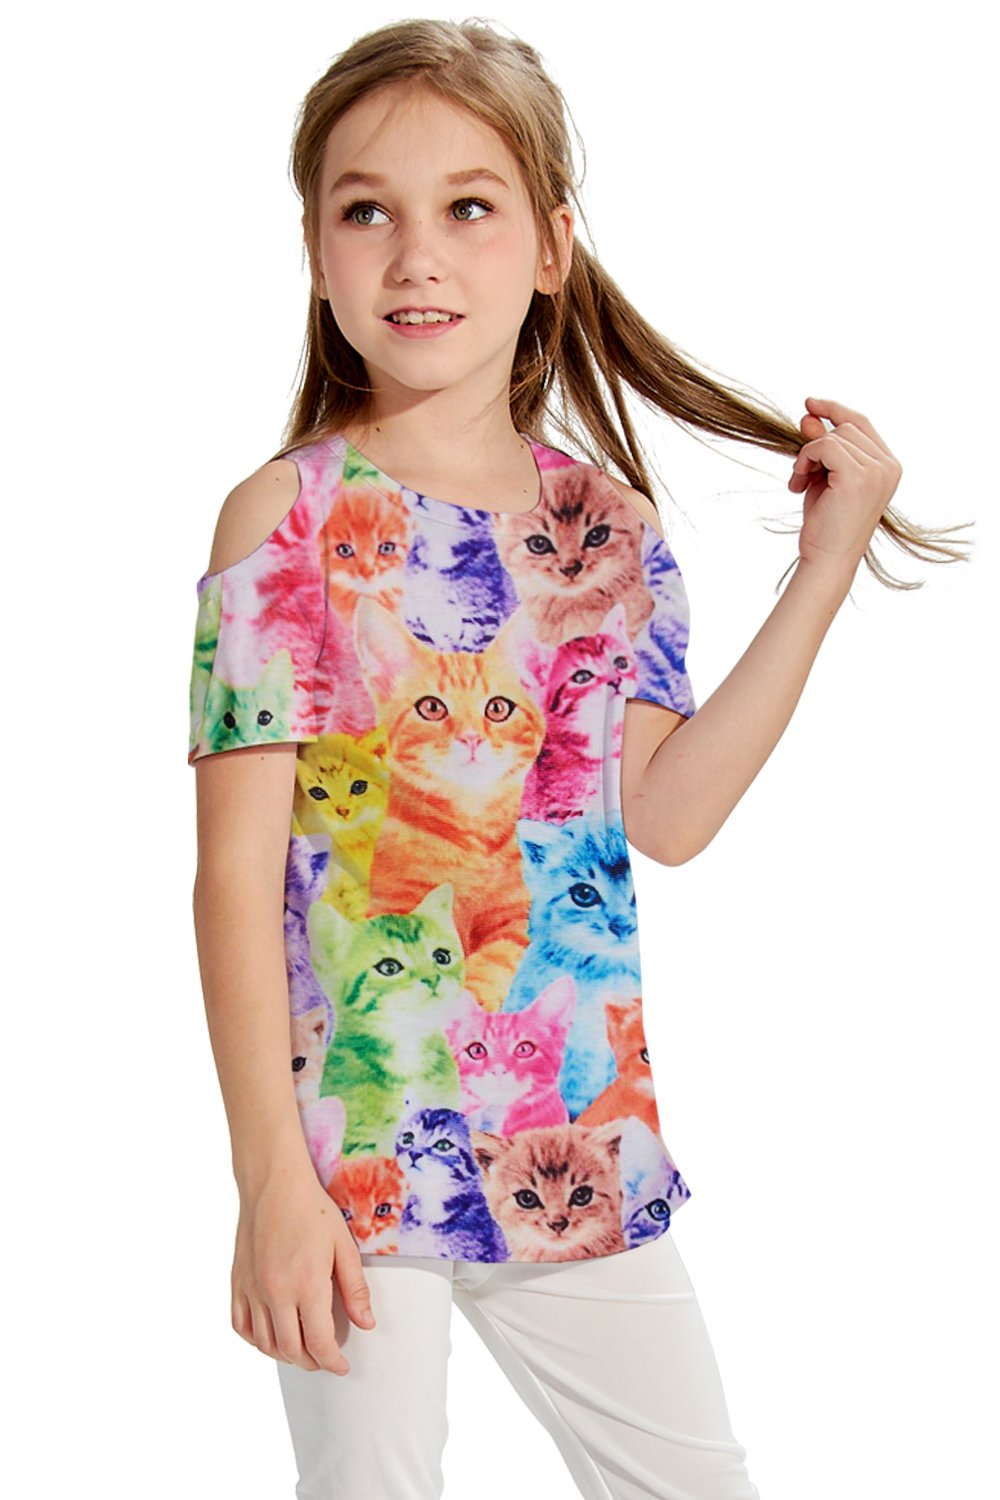 BFUSTYLE Short Sleeve O Neck Undershirt top Tank Shirt for Girls Kids fit 3-4t 1 Pack